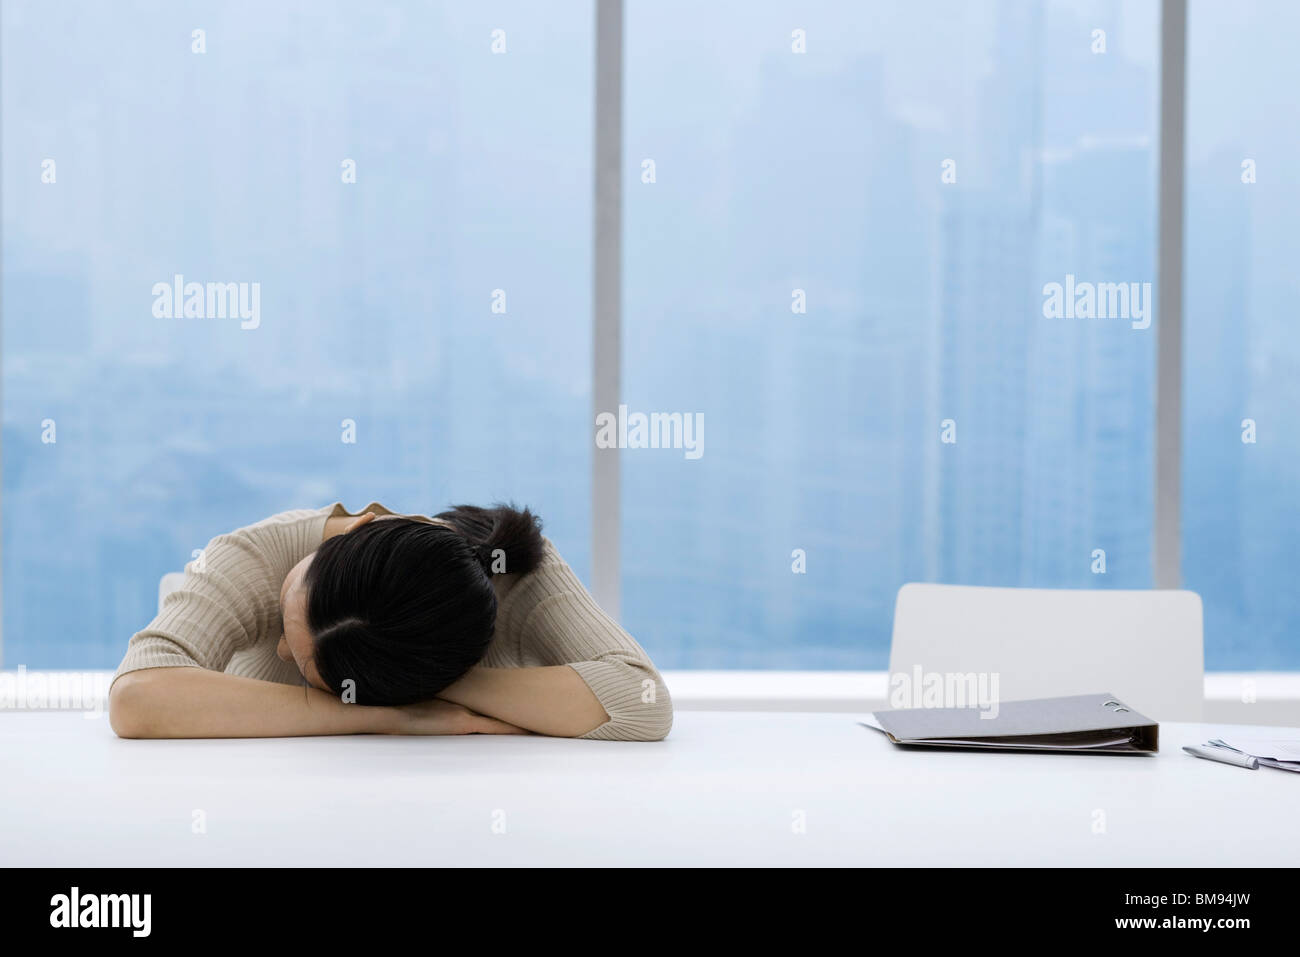 Woman napping at desk in office - Stock Image